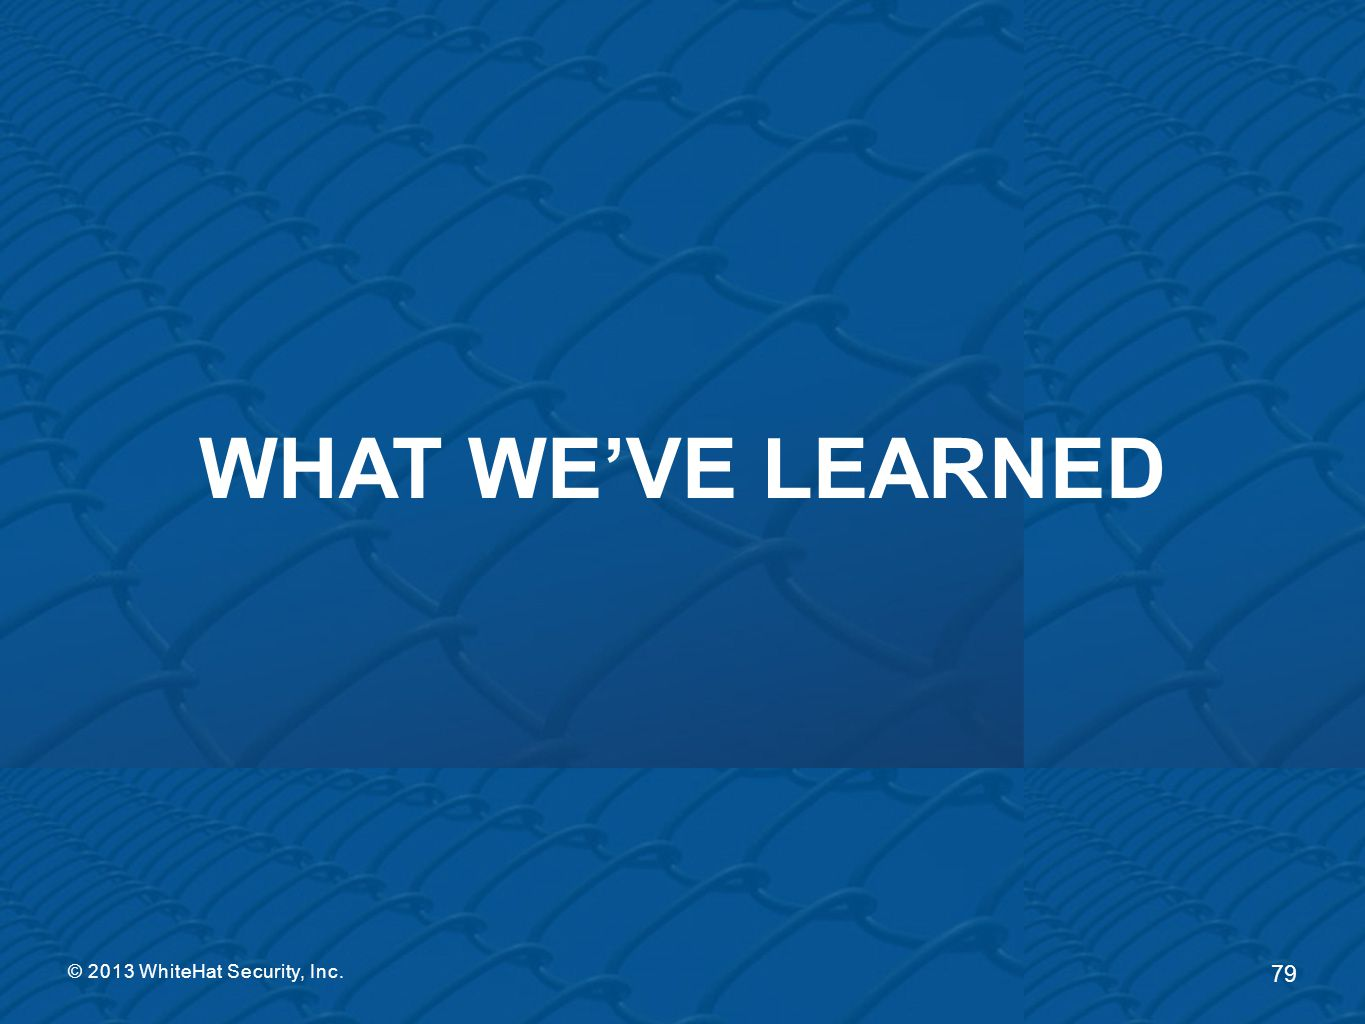 WHAT WE'VE LEARNED © 2013 WhiteHat Security, Inc.